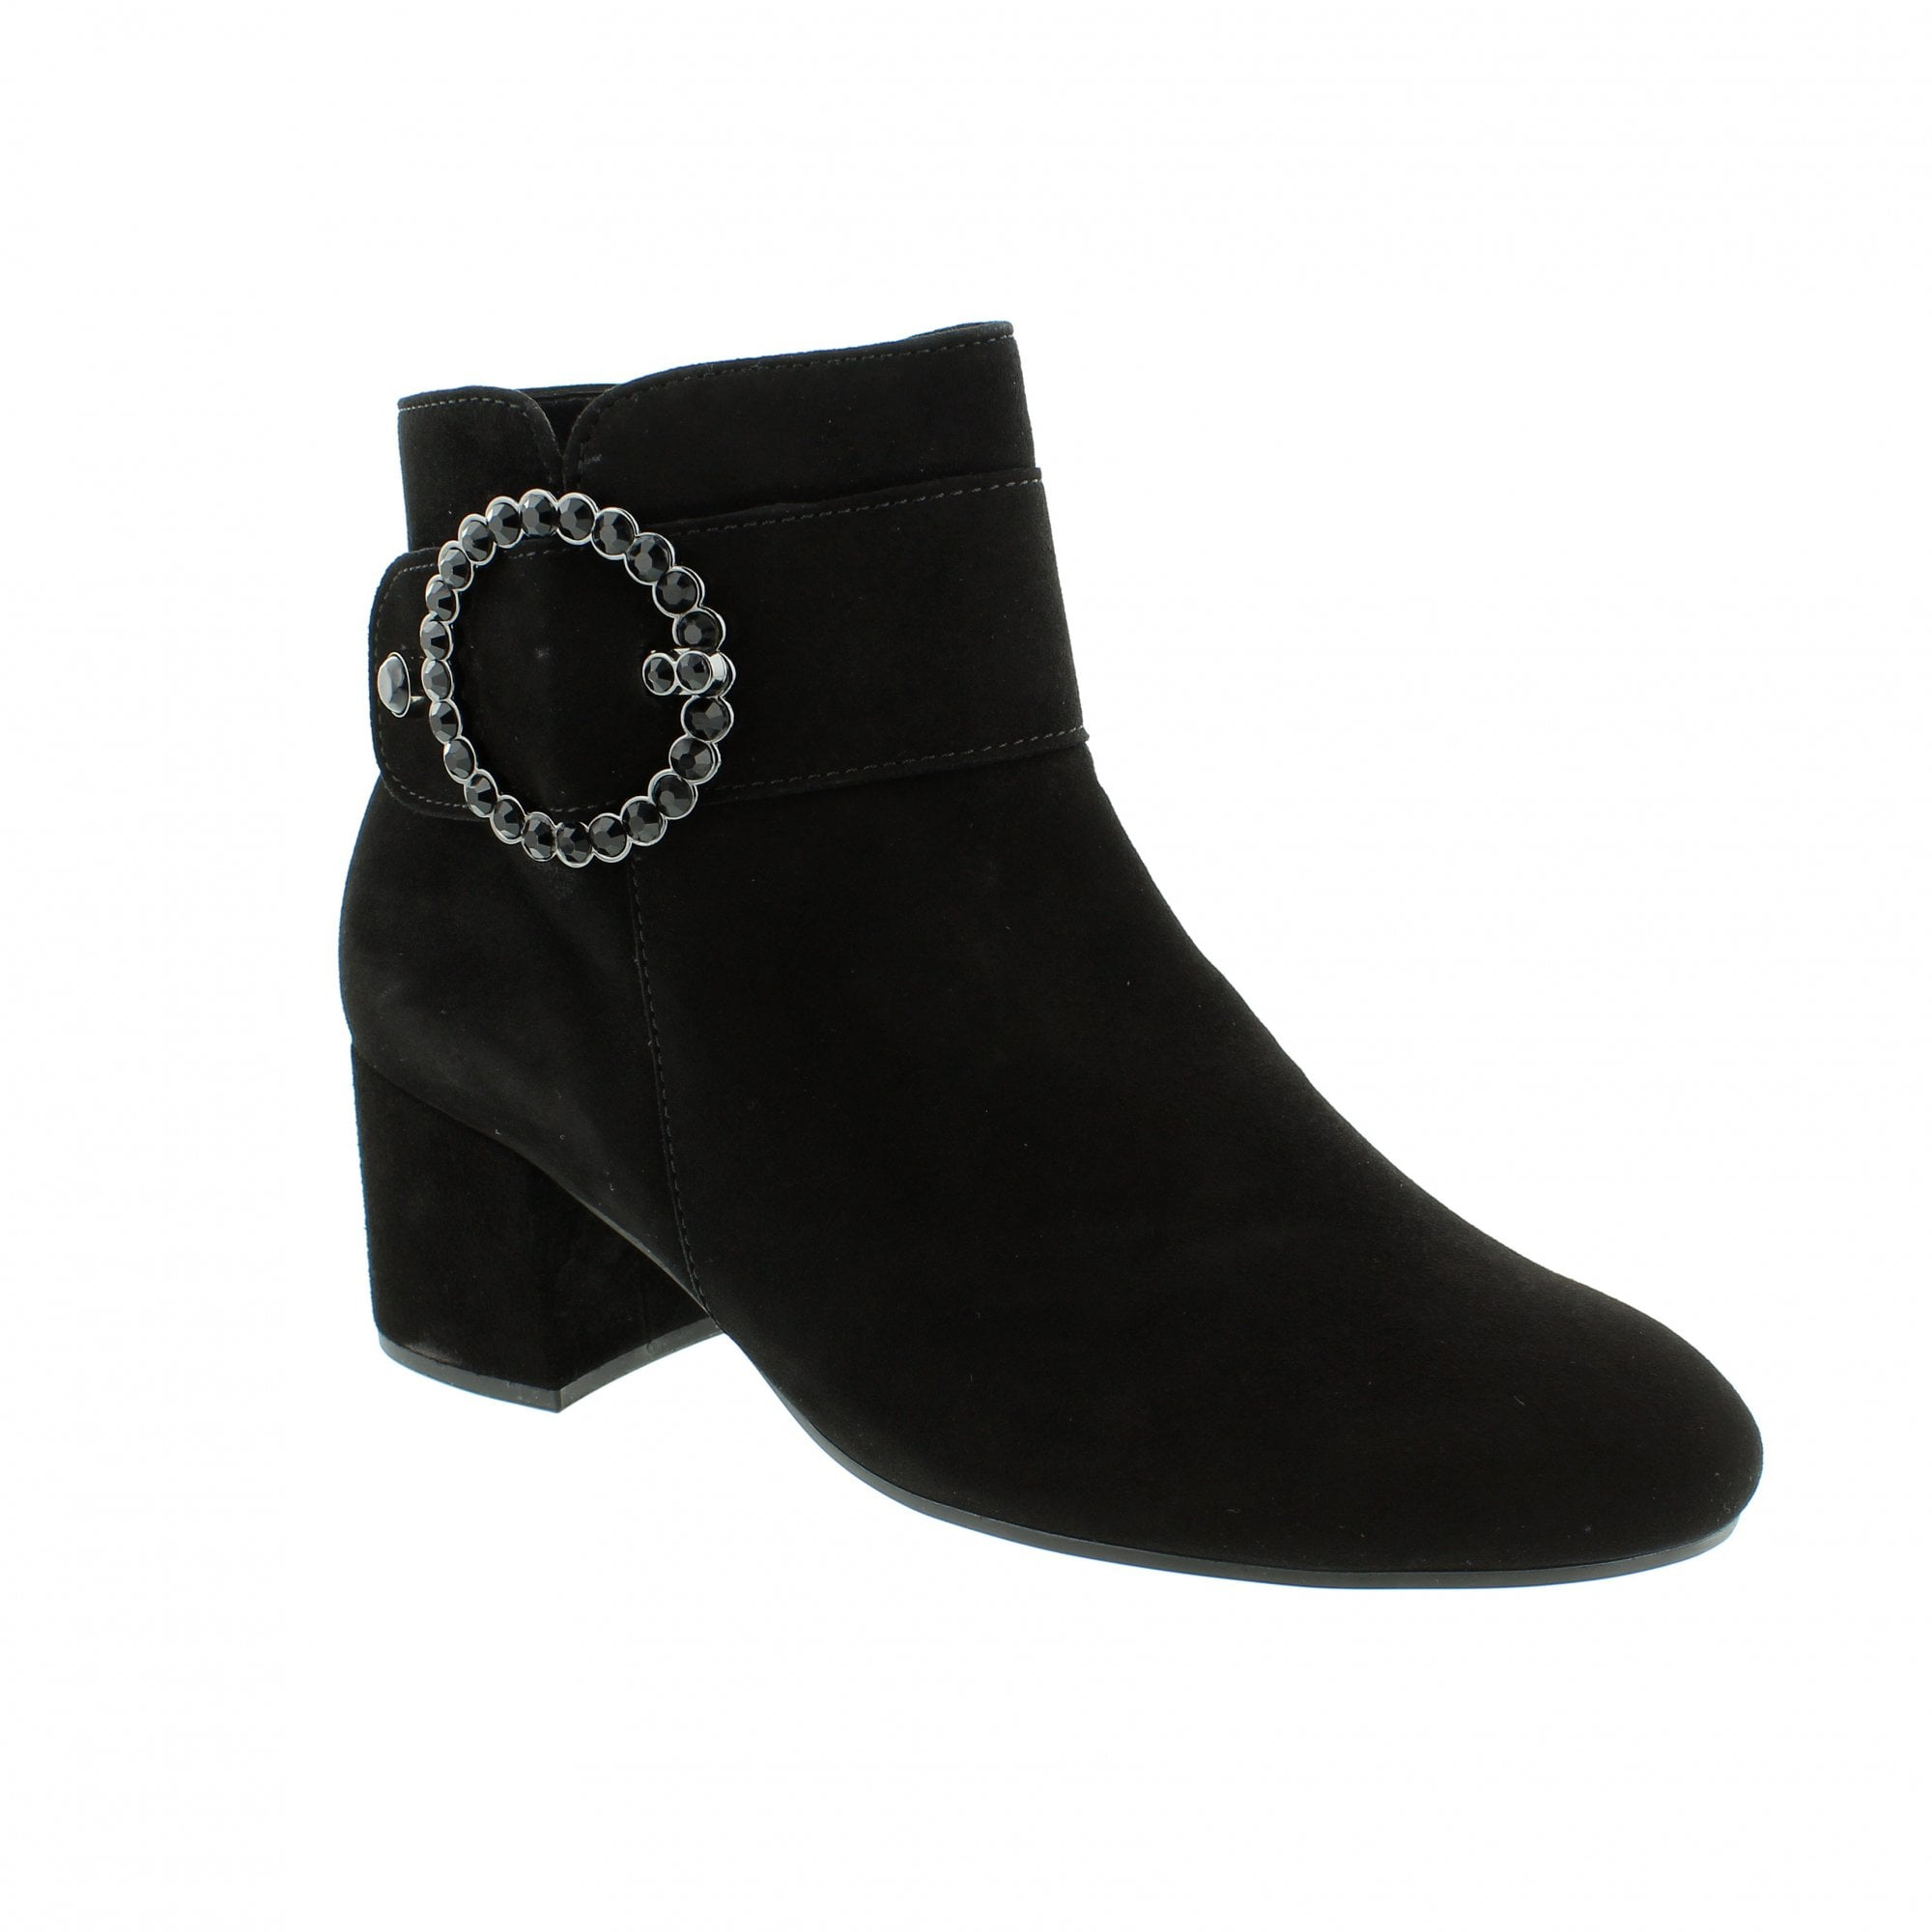 32d325fb4 Gabor Candice 91-694-17 Black Suede Womens Ankle Boots | Rogerson Shoes